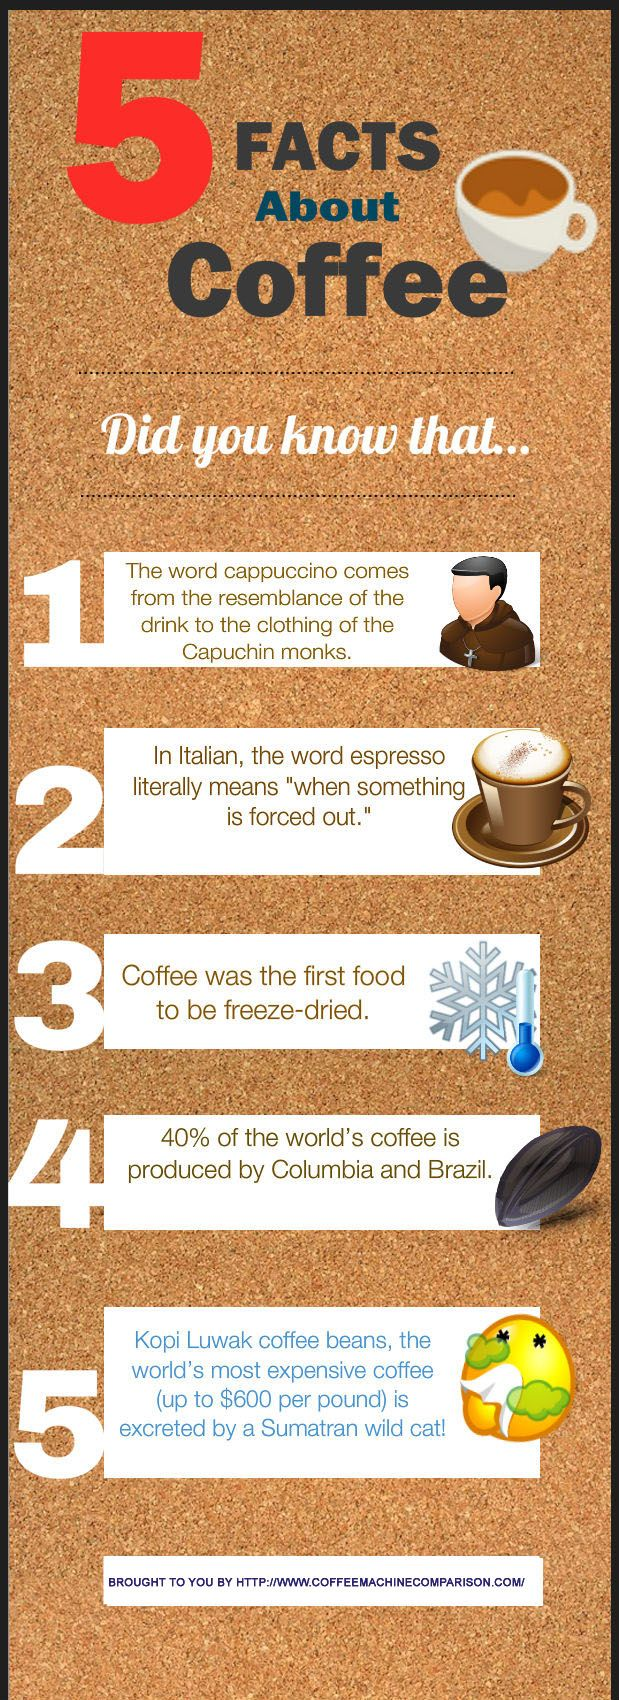 An infographic that describes why we all are hooked on the stuff (actually, I didn't know Columbia was a major coffee producer - I thought it was Brazil and Kenya)